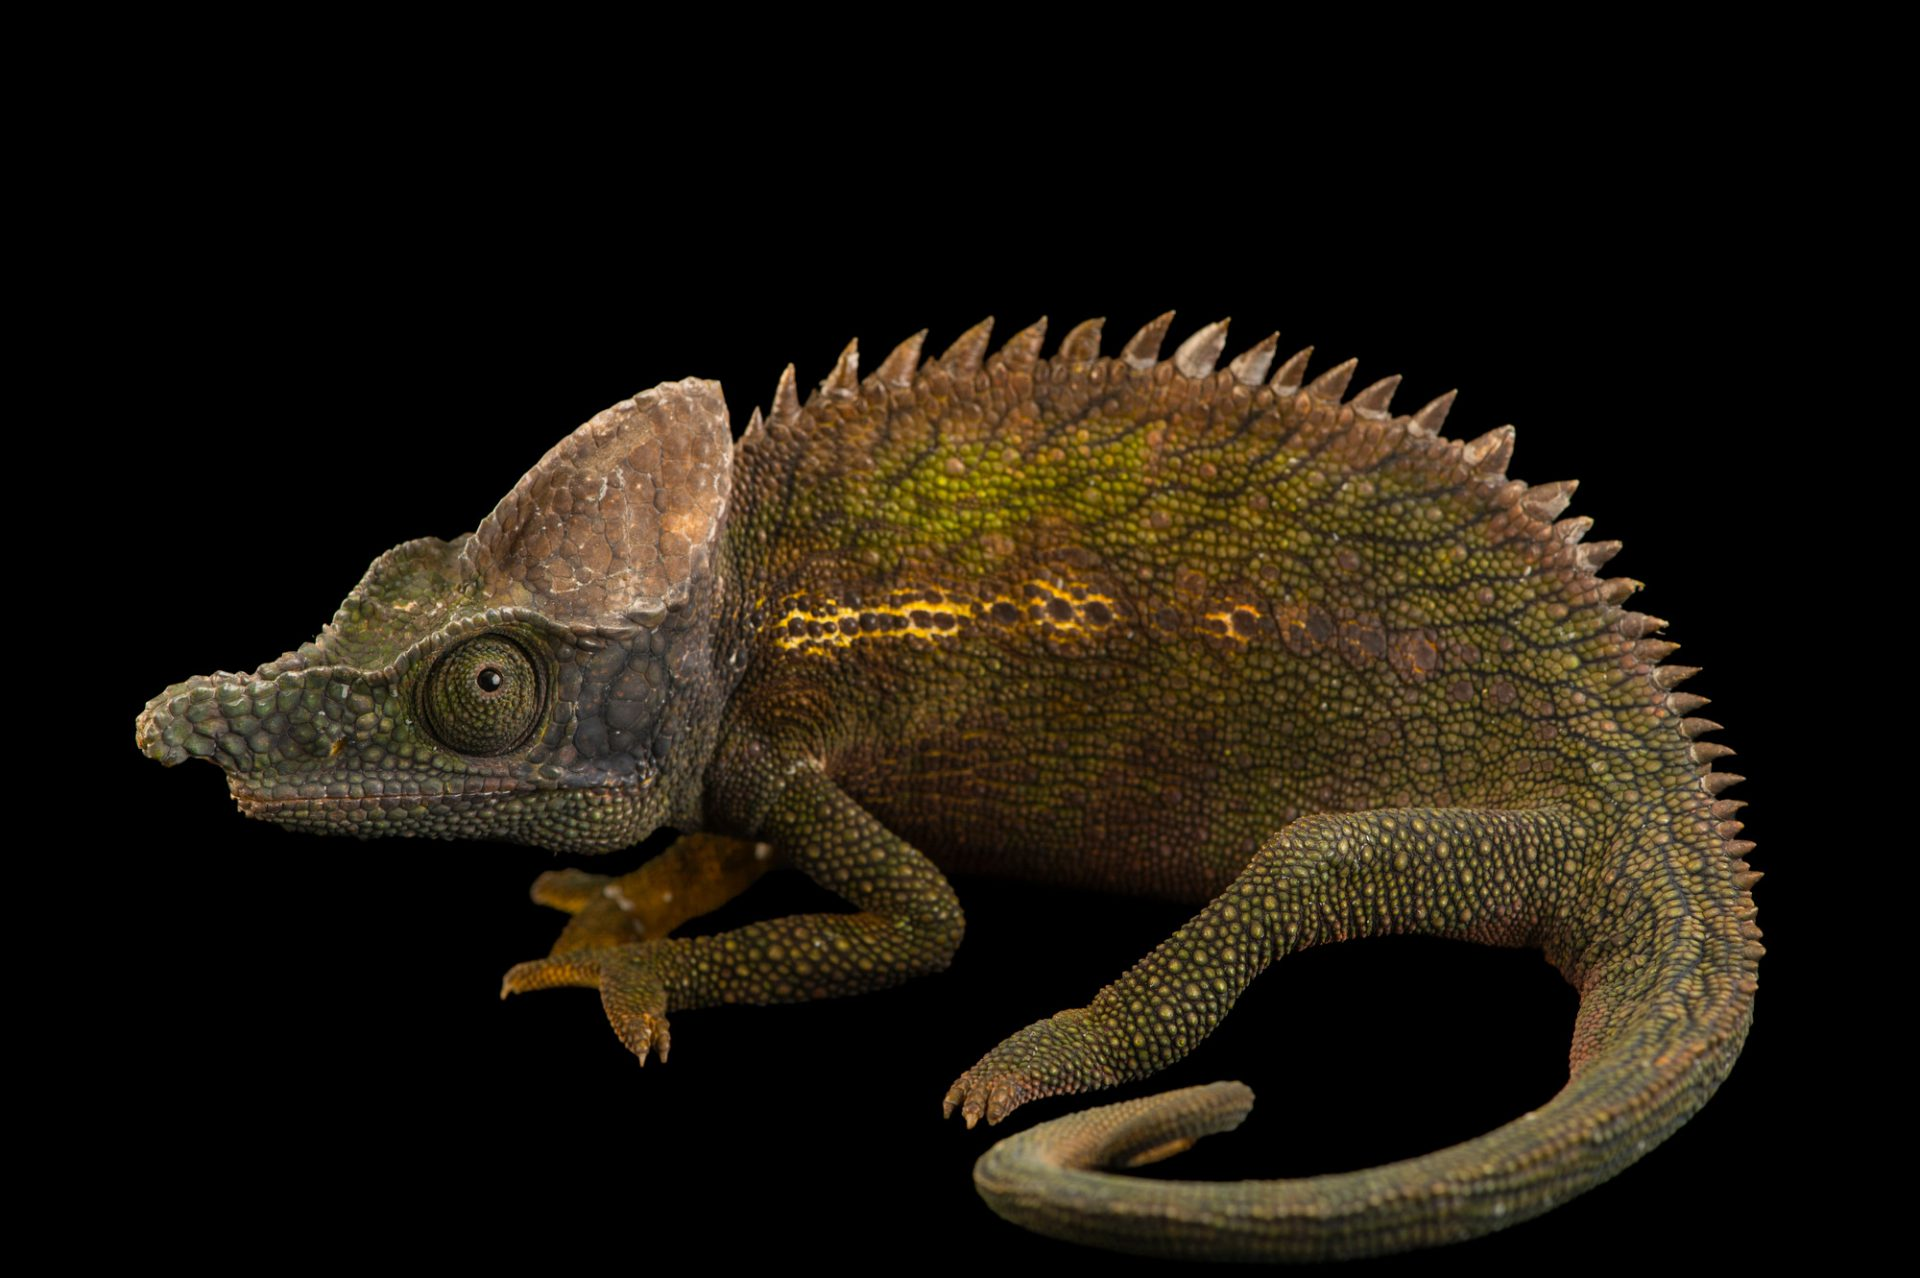 Photo: An antimena chameleon, Furcifer antimena, from a private collection.